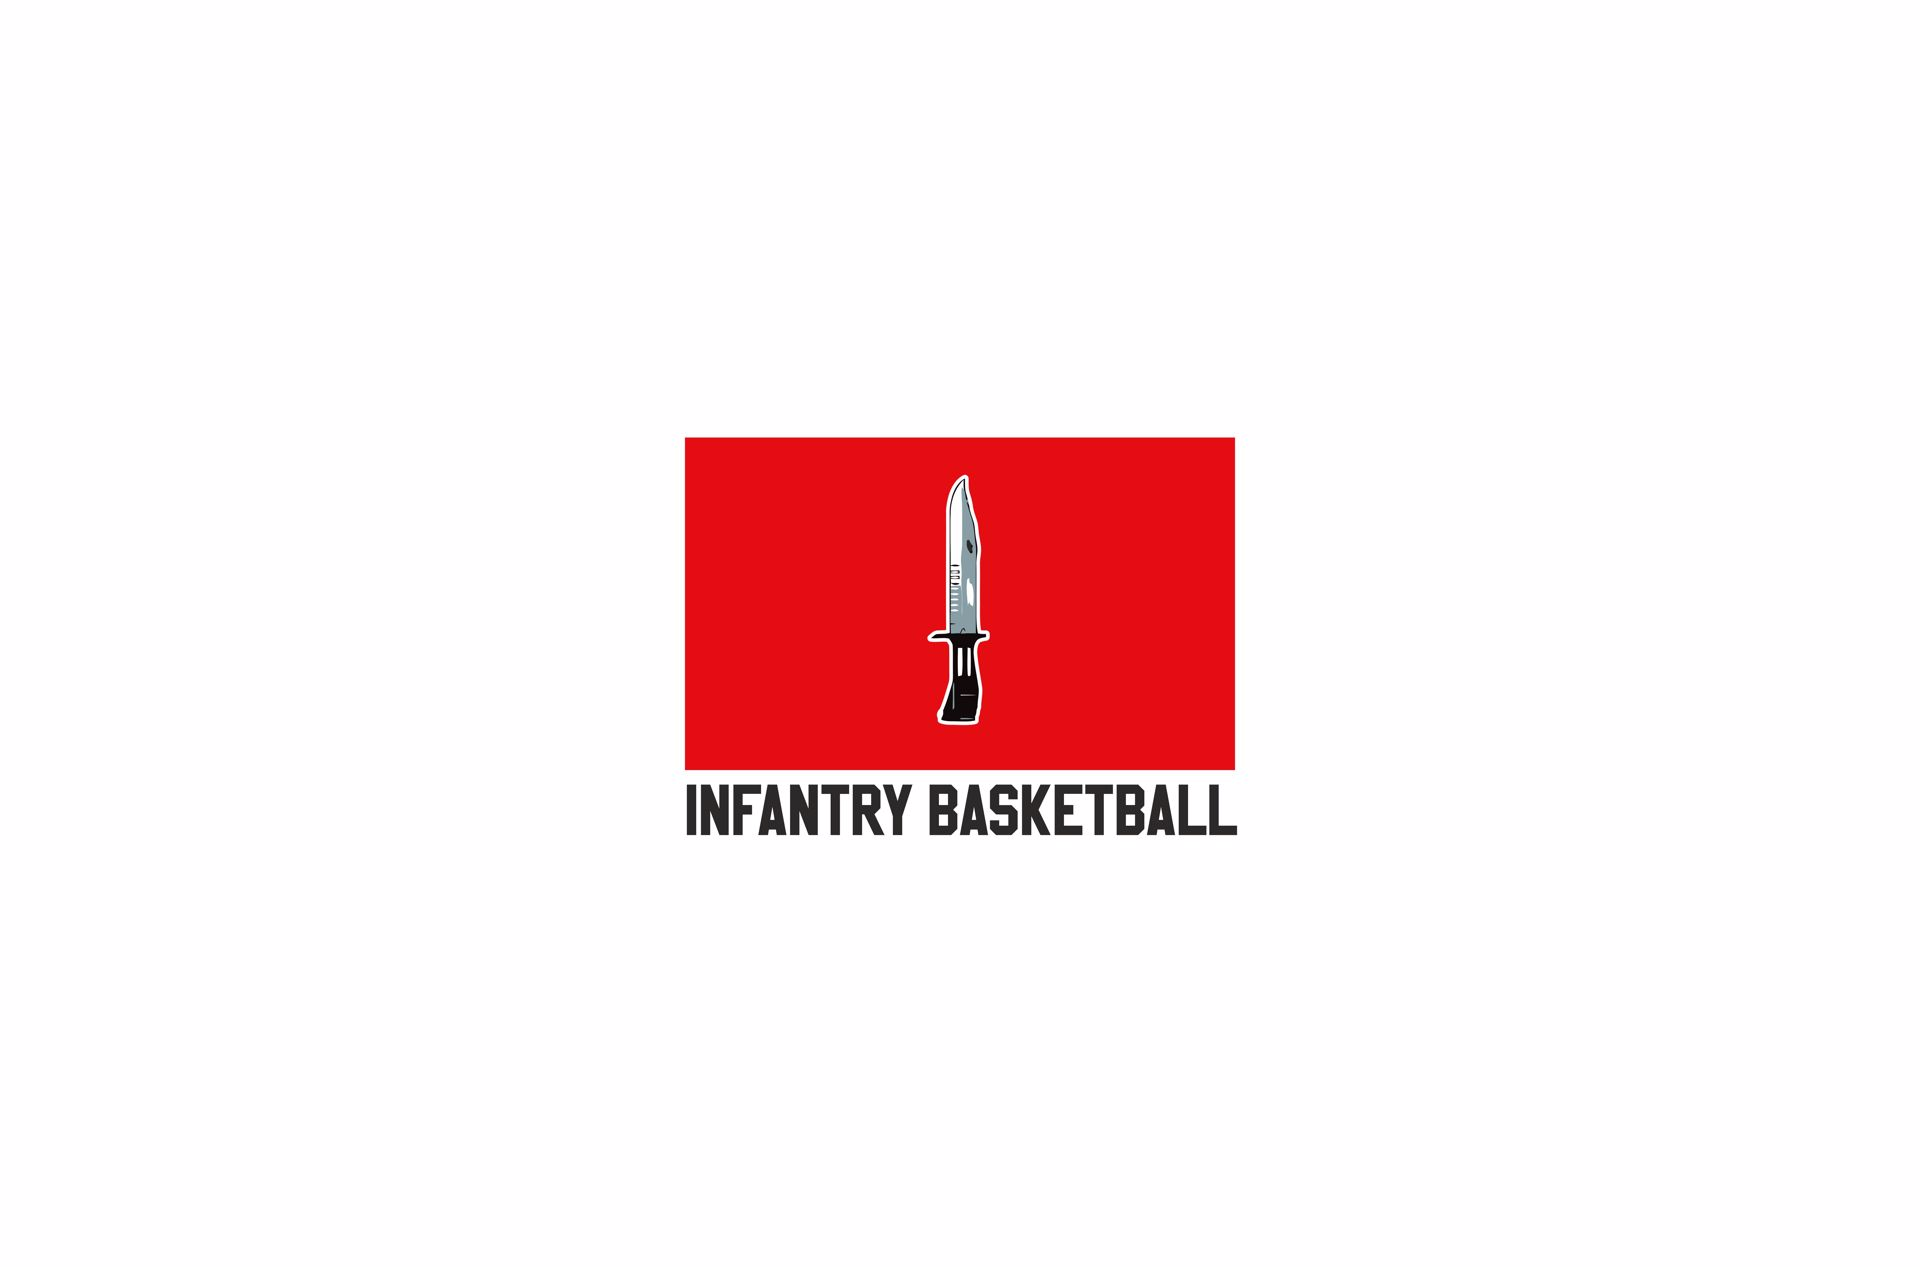 Club Image for Infantry Basketball